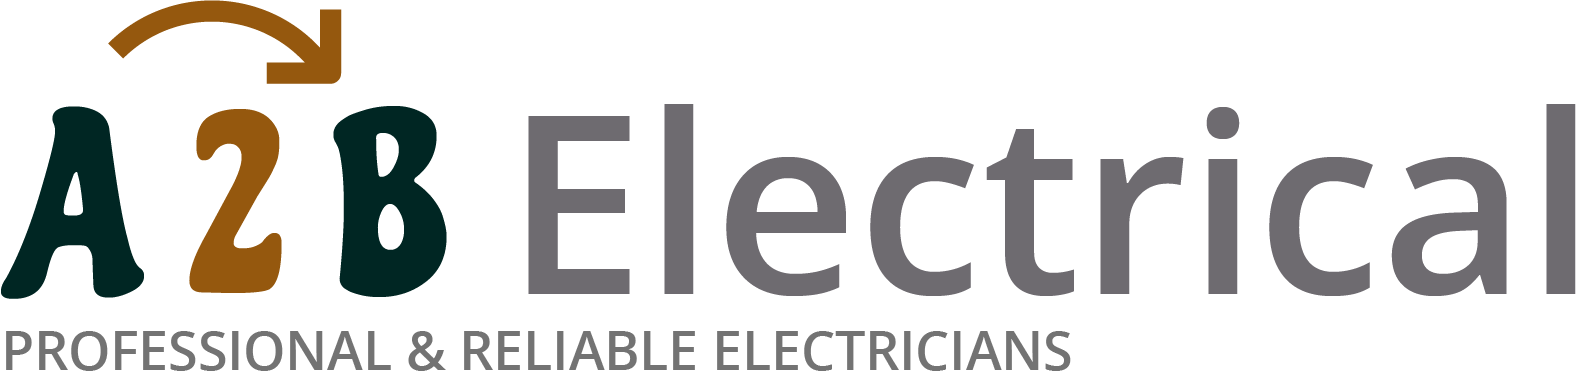 If you have electrical wiring problems in Chislehurst, we can provide an electrician to have a look for you.